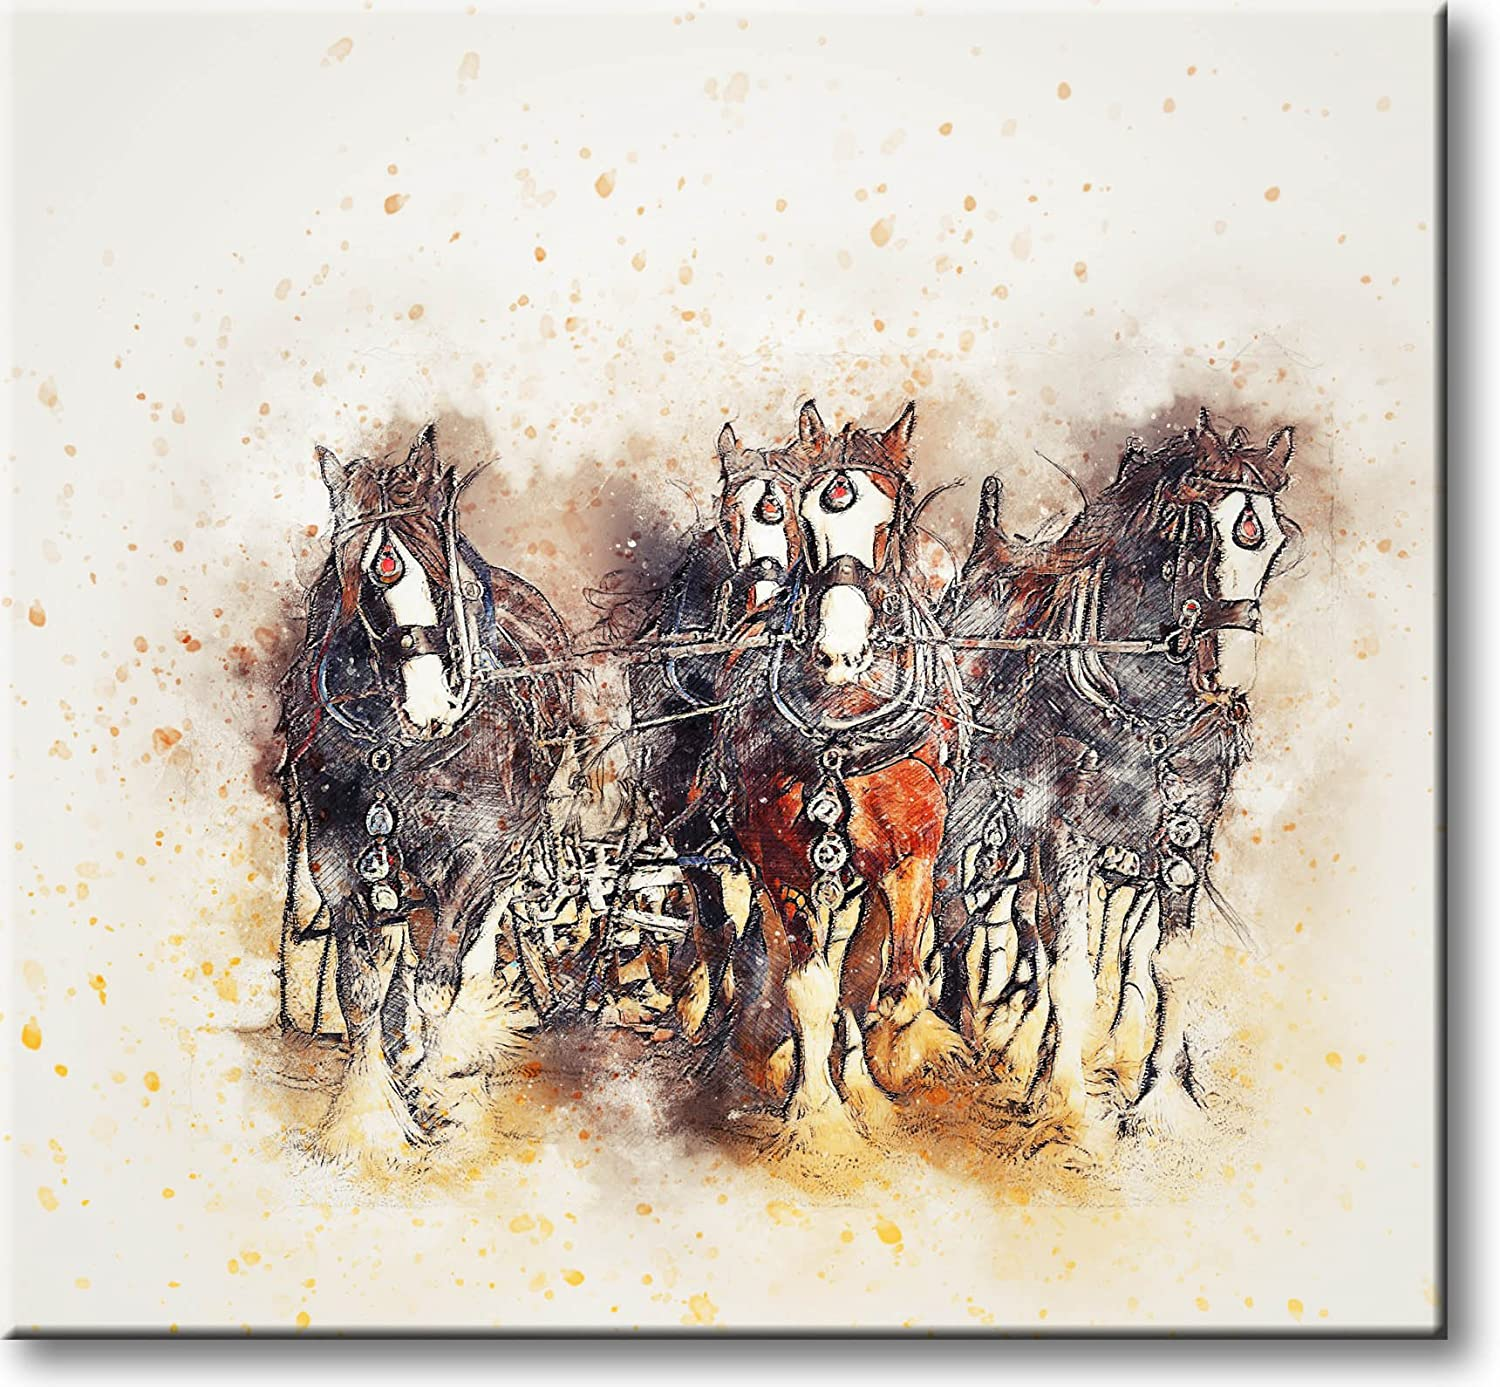 Horses and Carriage Painting Picture on Stretched Canvas, Wall Art Décor, Ready to Hang